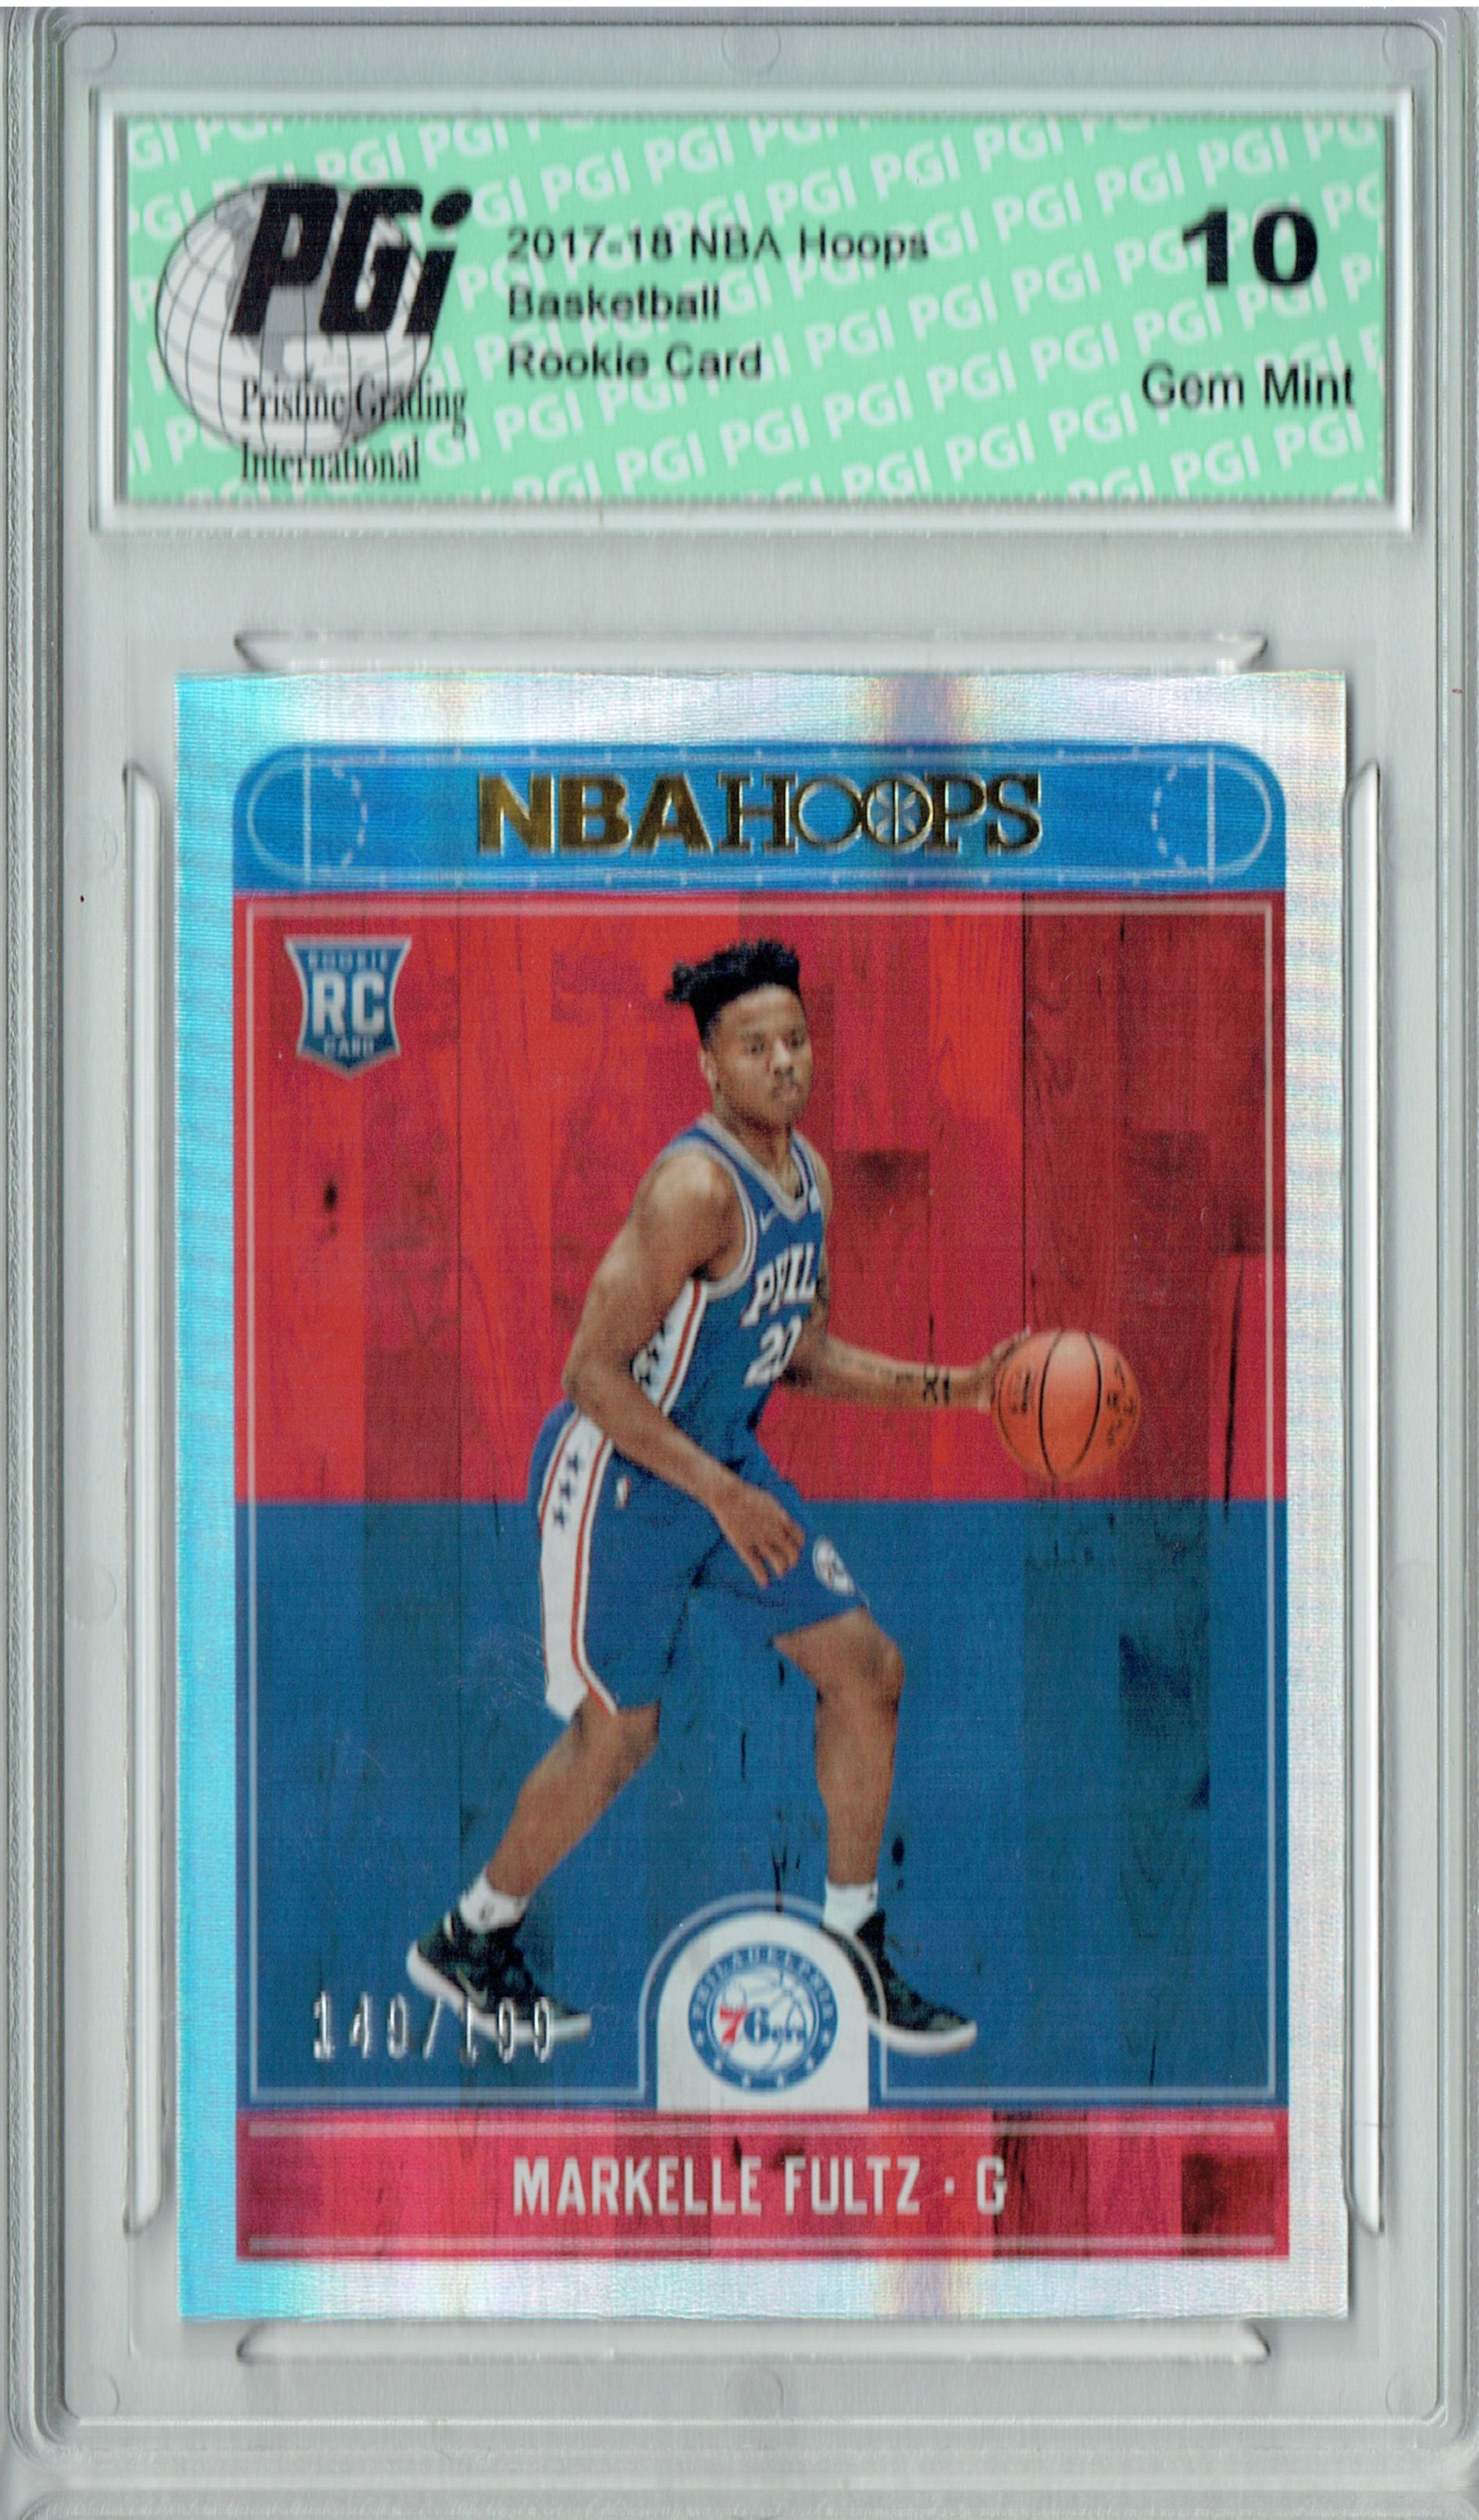 Markelle Fultz 2017 Hoops #251 Silver SP, Only 199 Made Rookie Card PGI 10